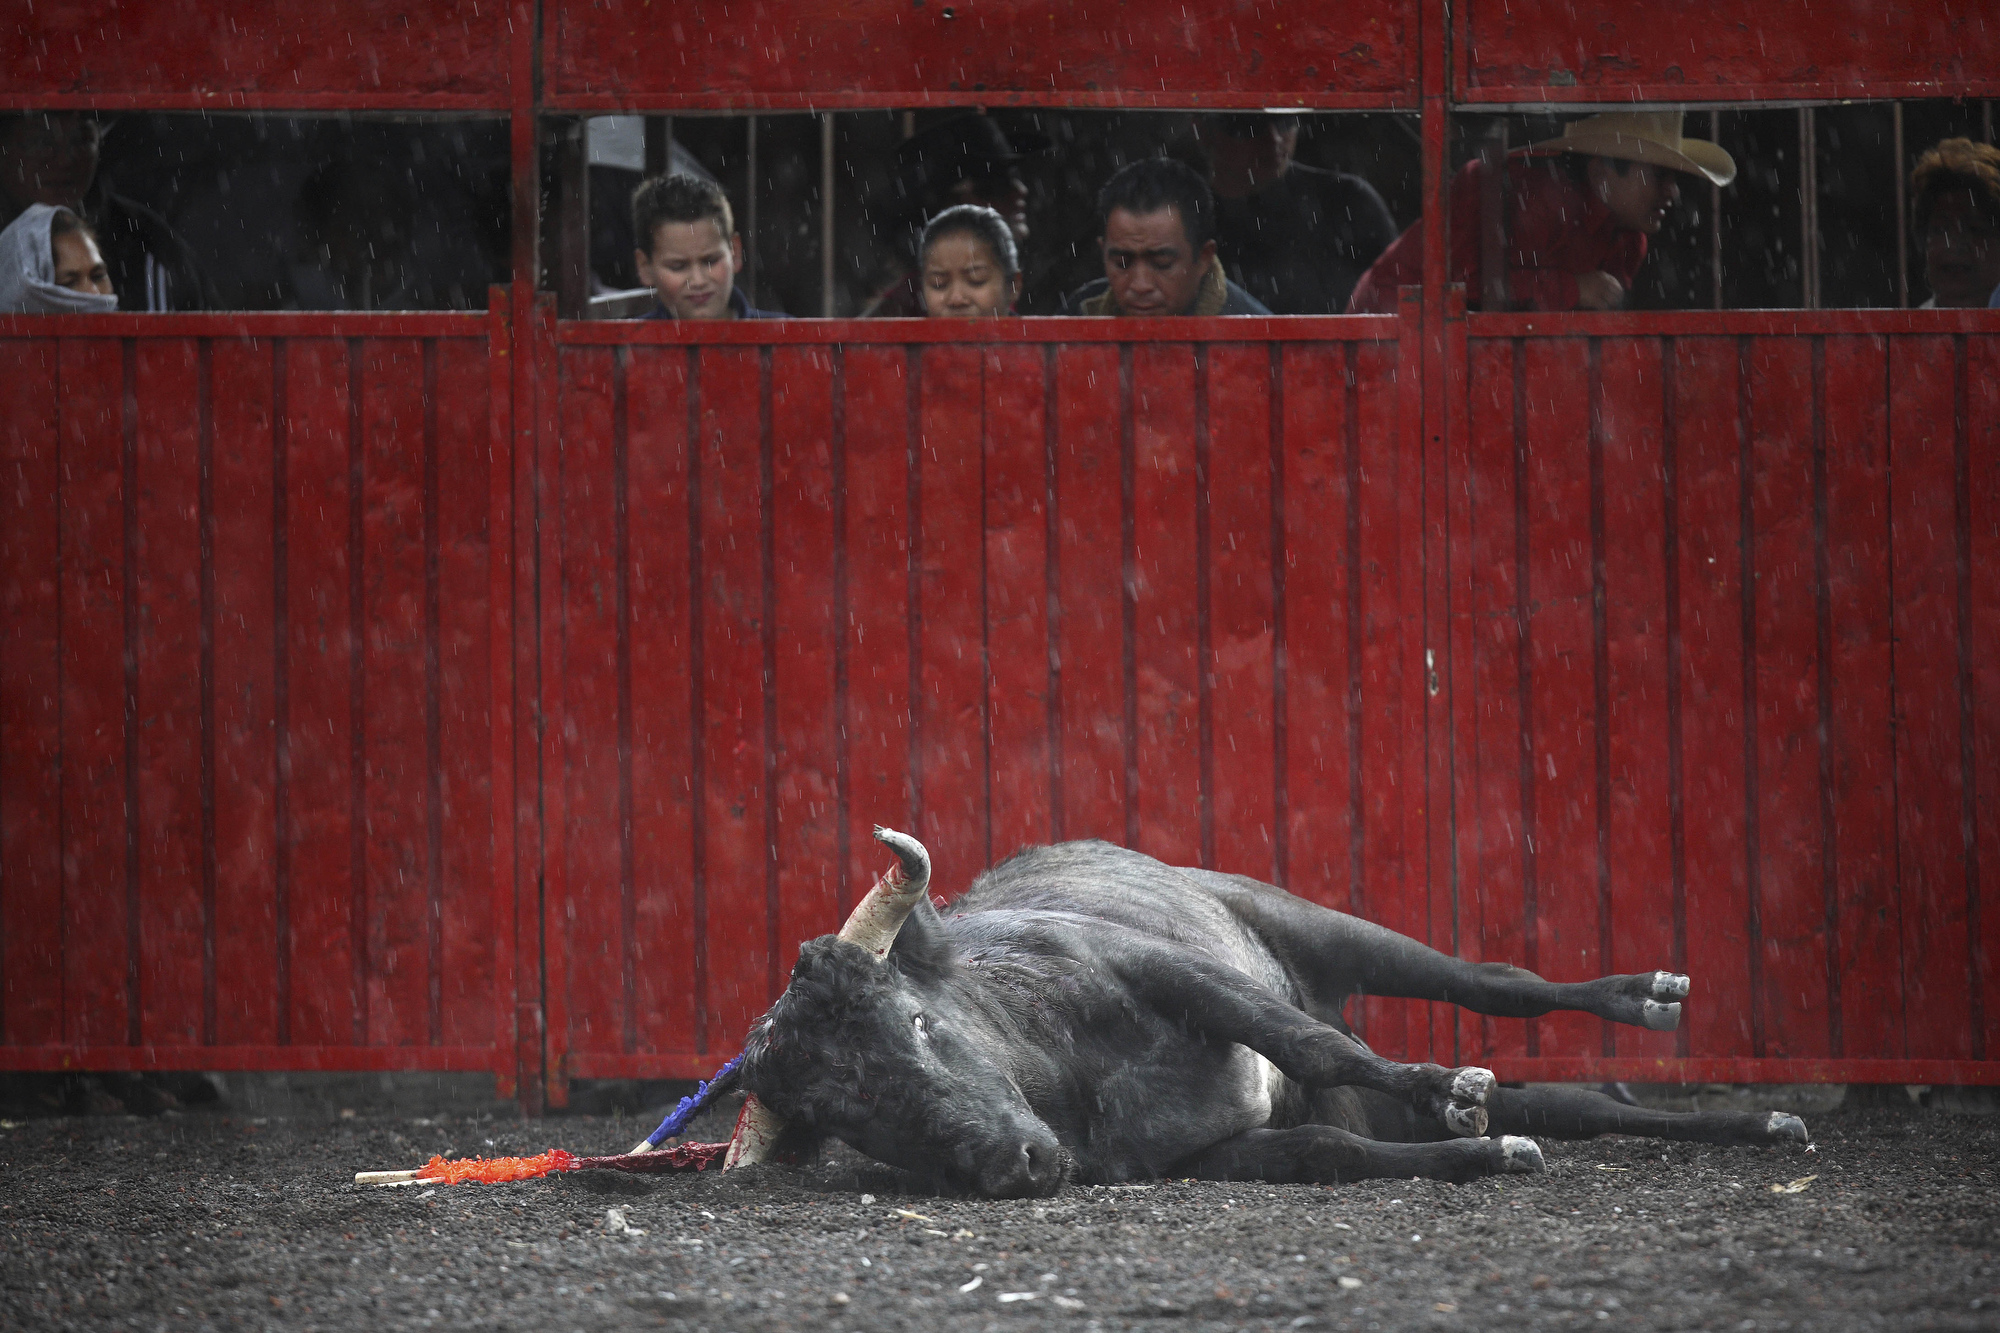 Mexico Bullfighting